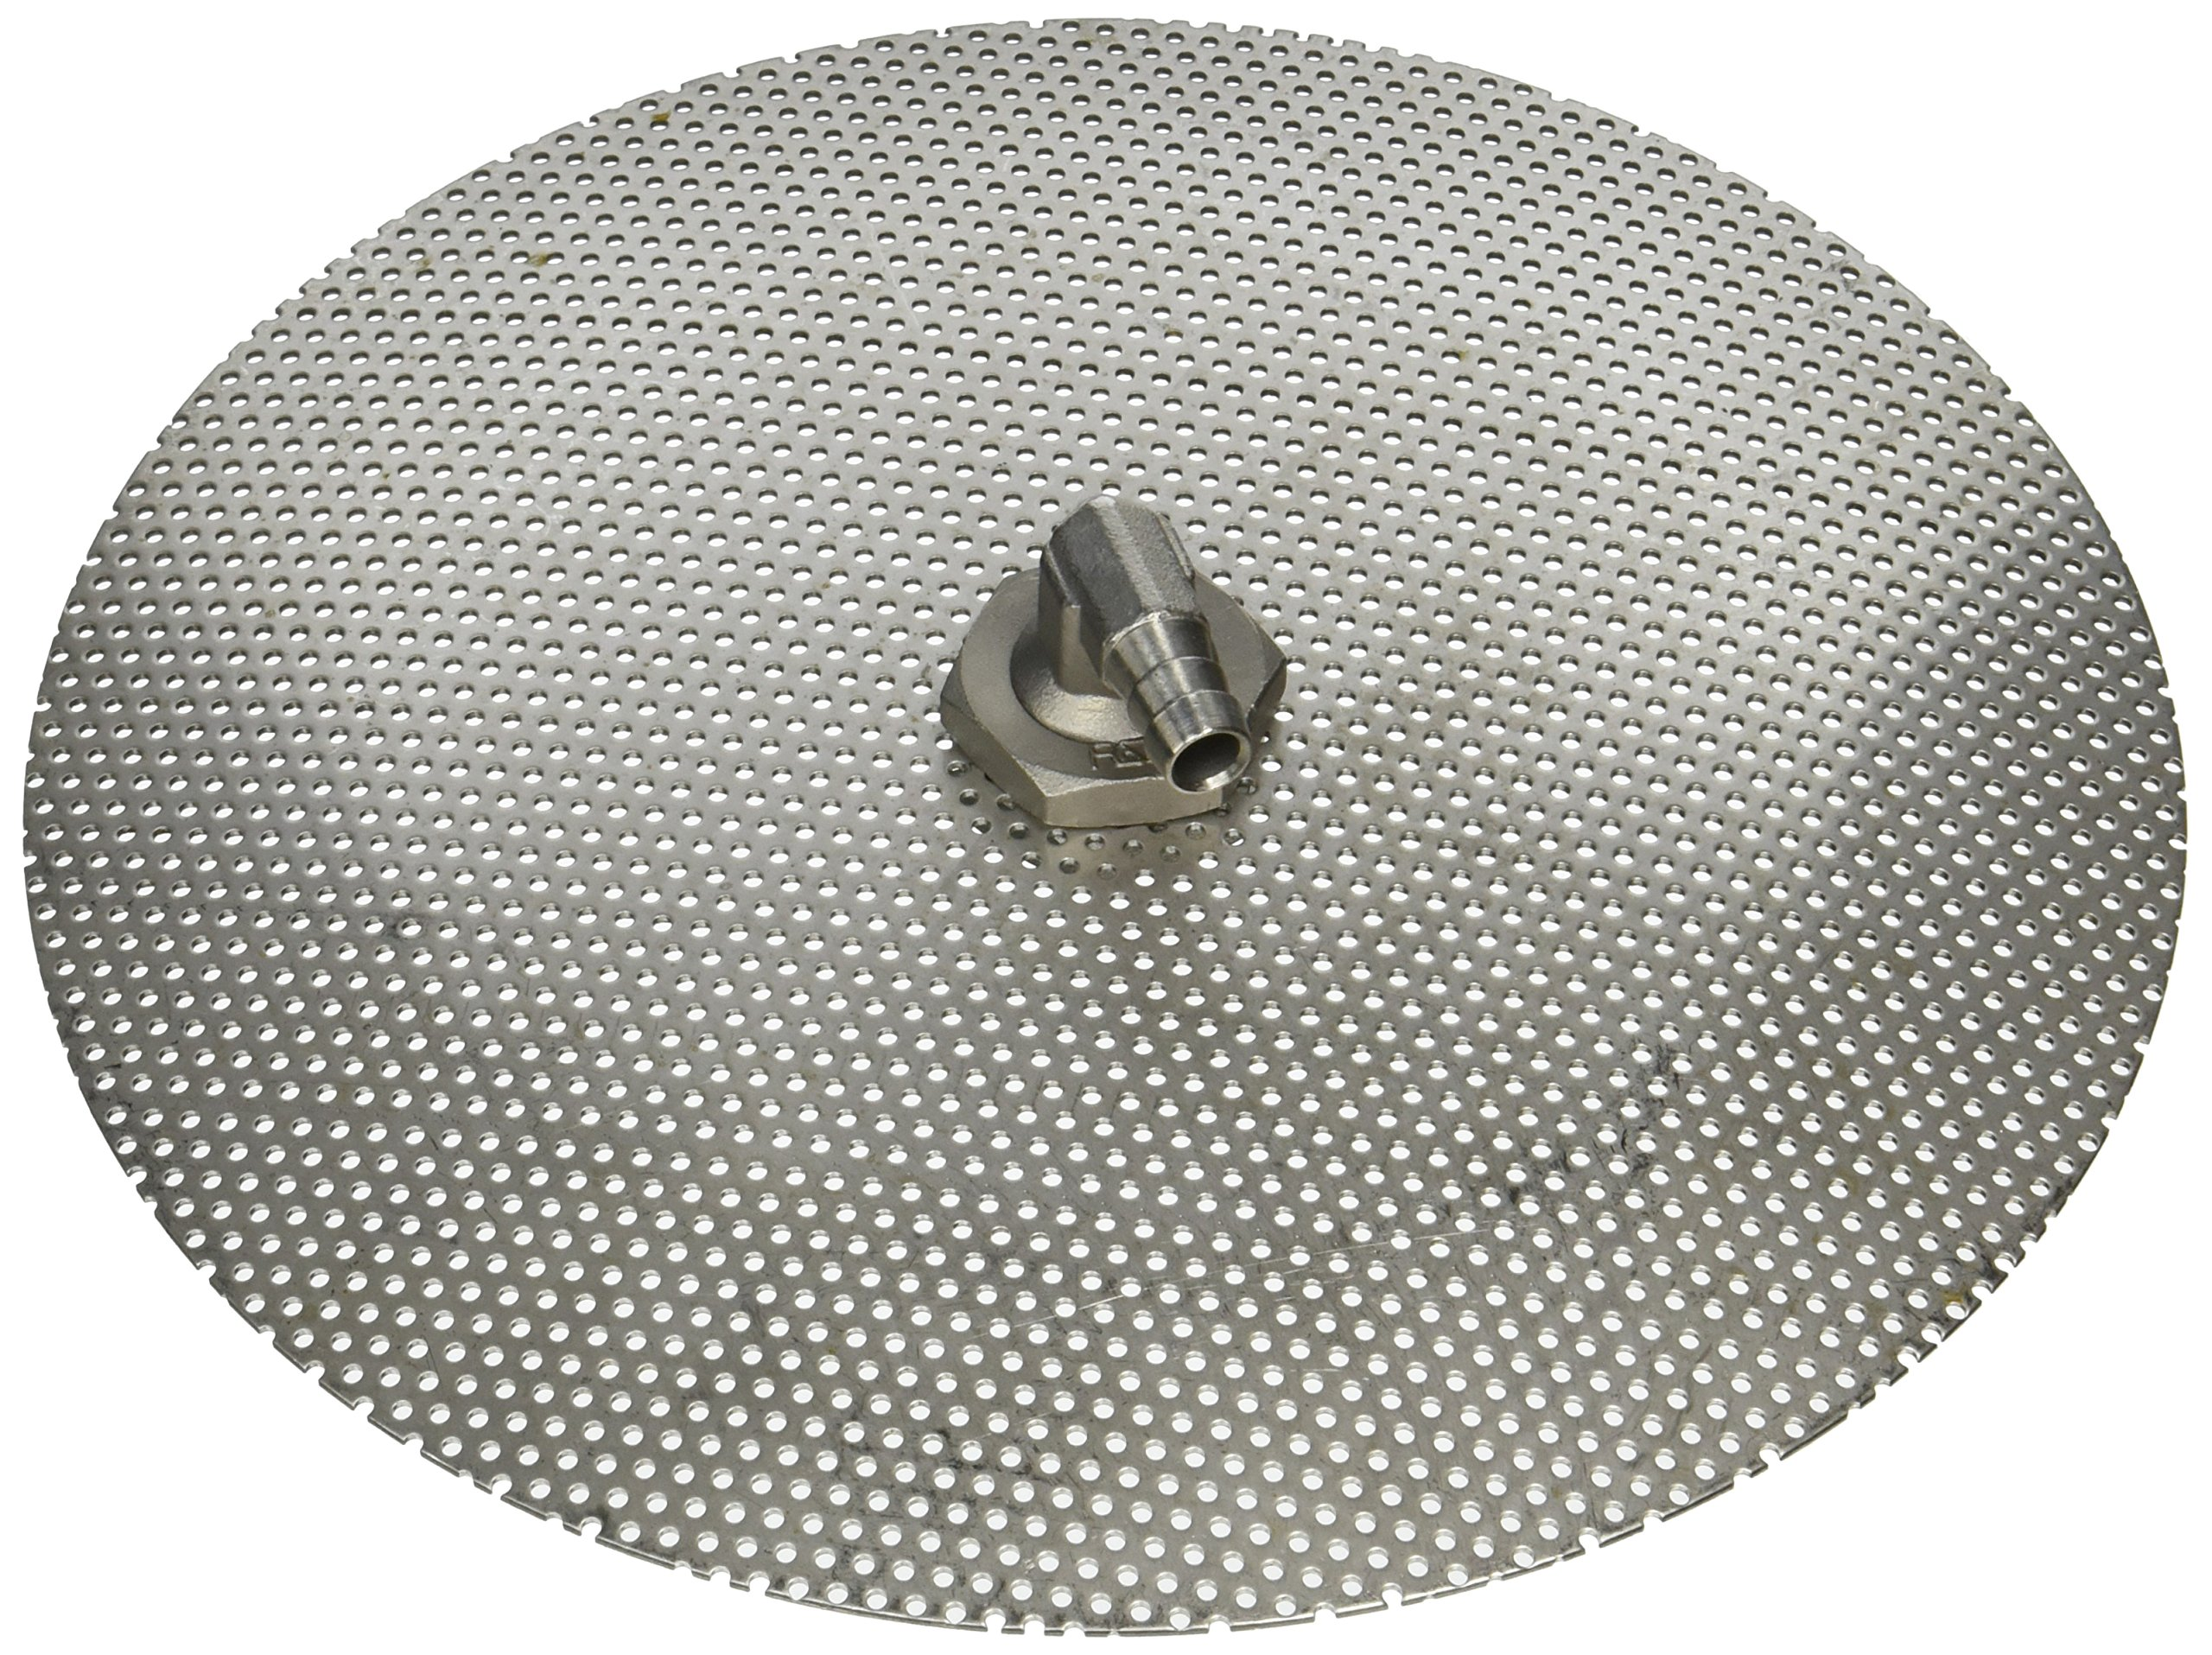 Stainless Steel Domed False Bottom - Select a Size (12'', 10'' or 9'') (9'') by Chill Passion Inc.